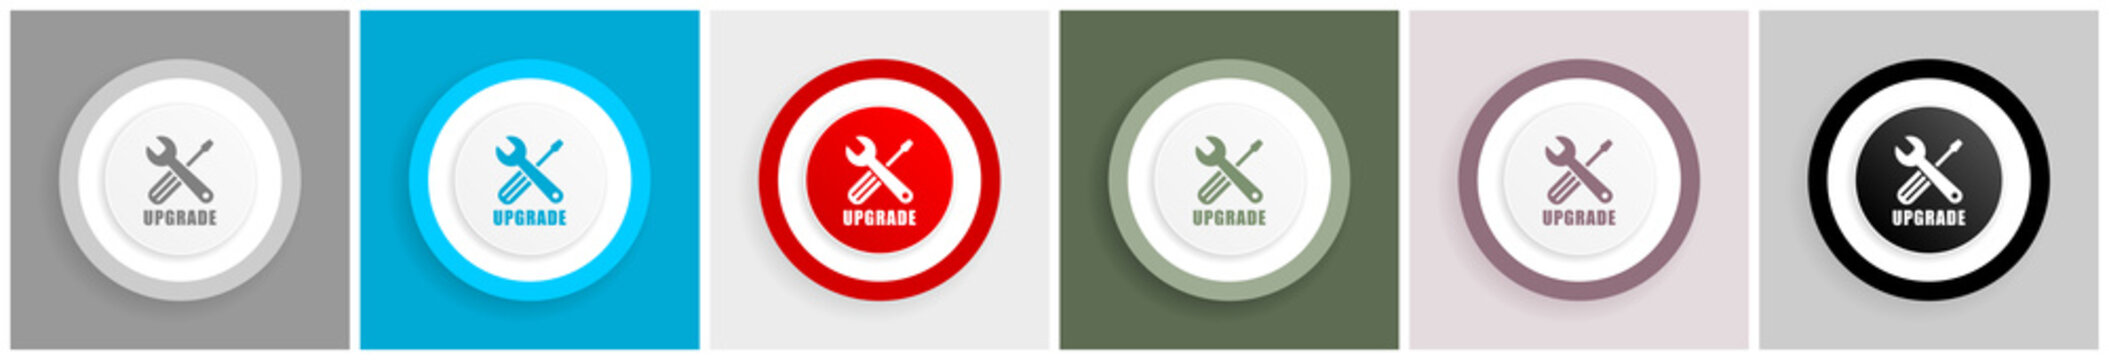 Upgrade icon set, vector illustrations in 6 options for web design and mobile applications